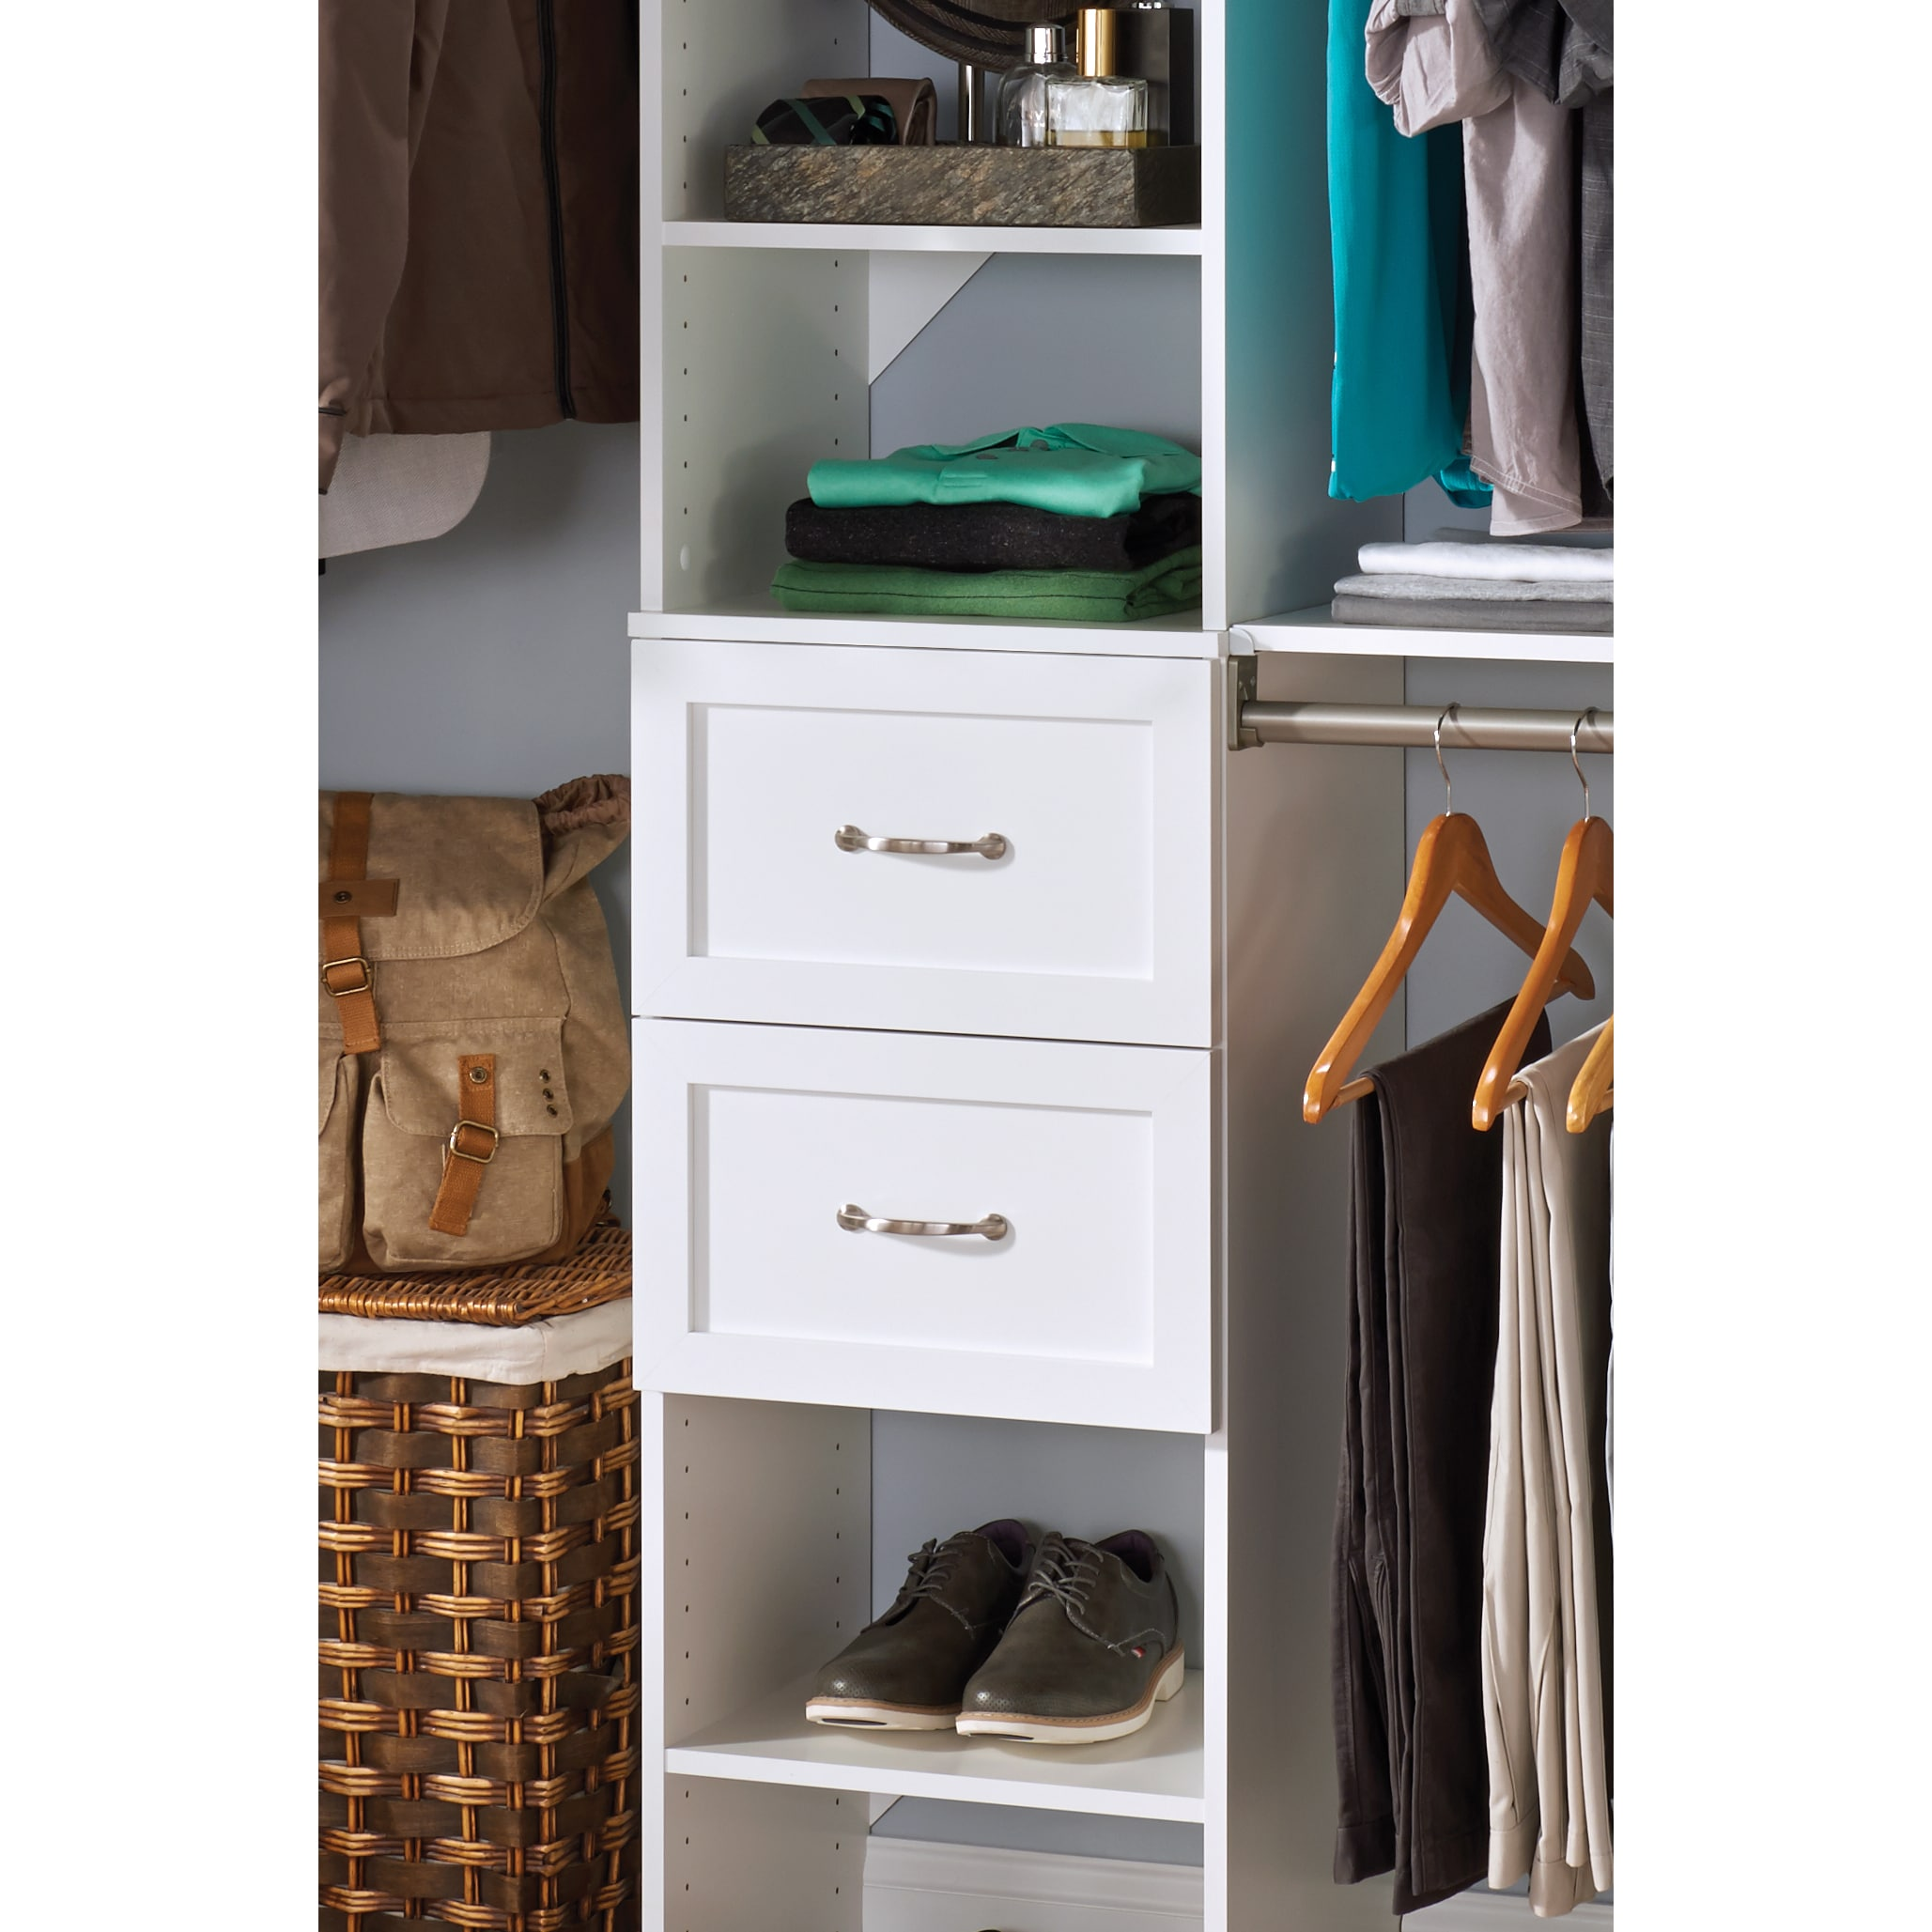 the custom of built with drawers cupboard shelves best professional do closet full in closets size interior chaos organizer solution storage design yourself cabinet and to shelving system your it clothes open bedroom organizers rubbermaid